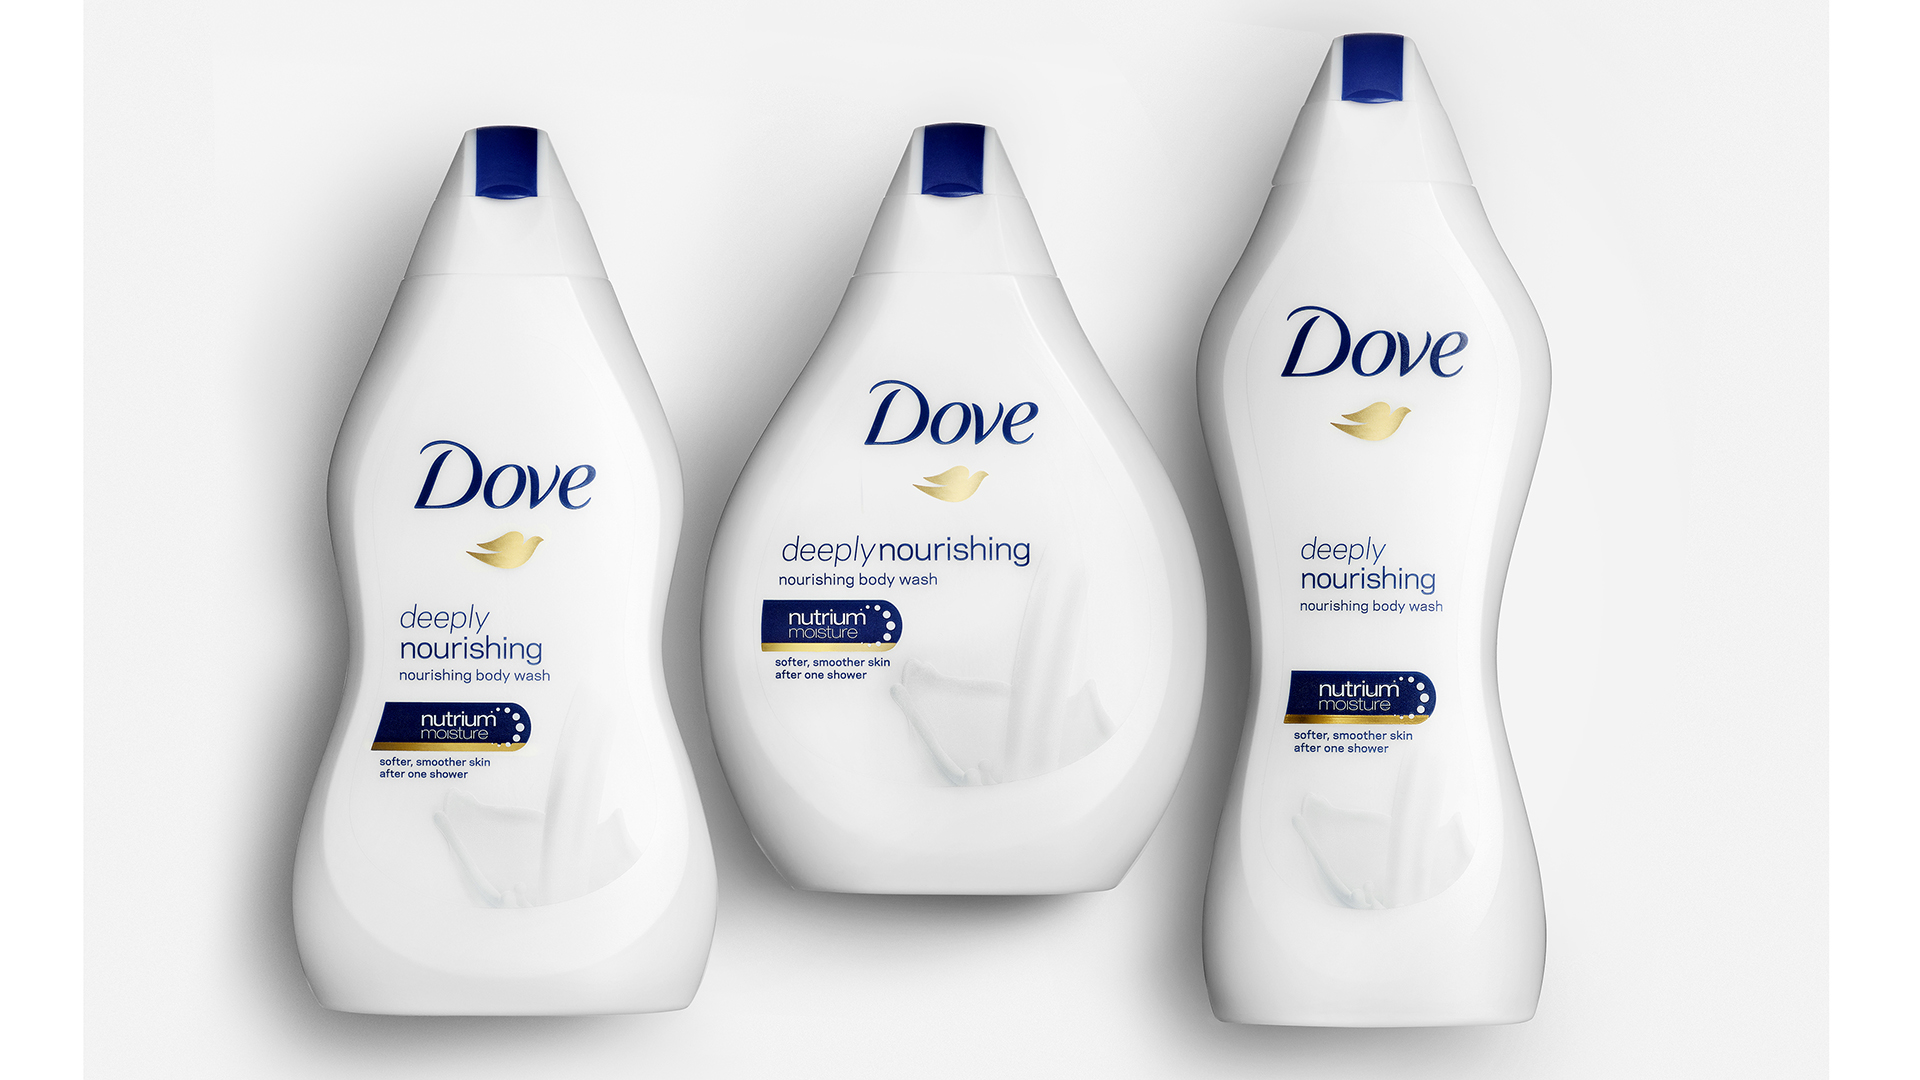 My Thoughts on Dove's